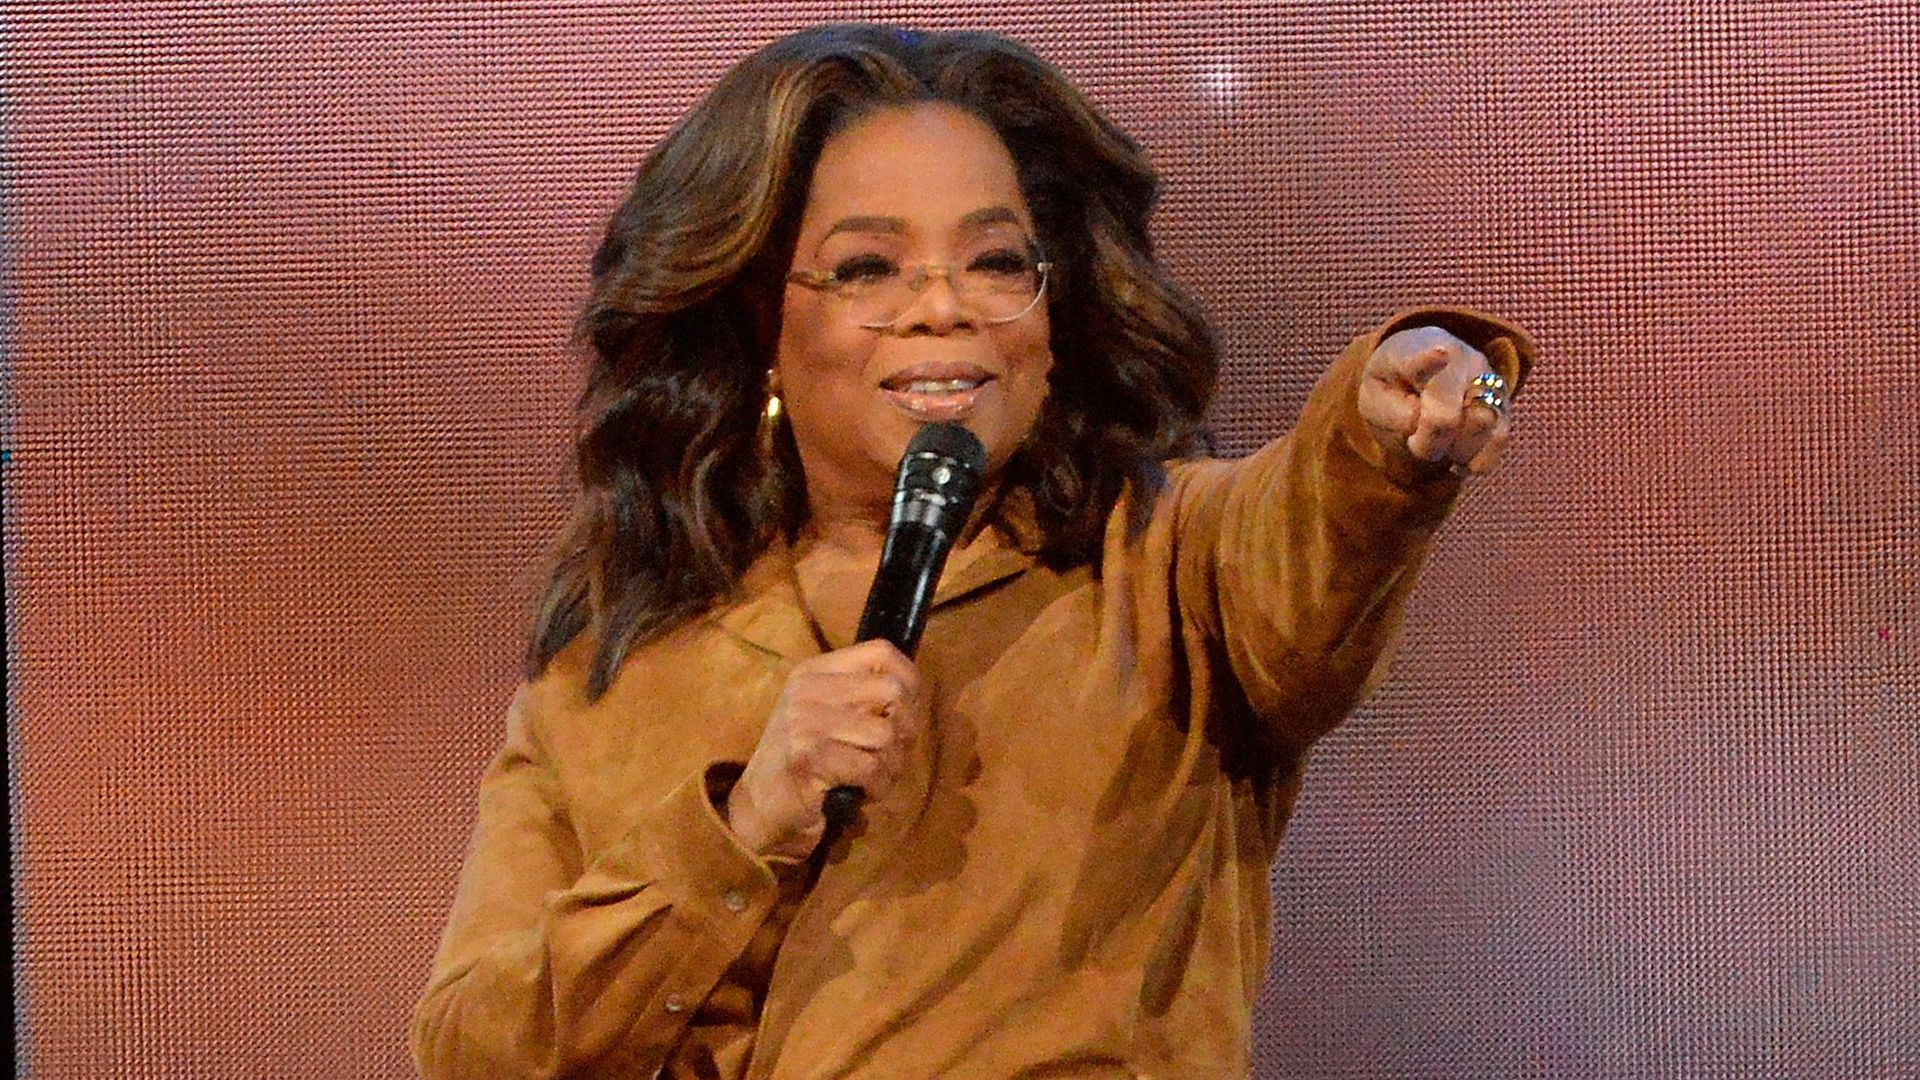 """Mandatory Credit: Photo by Brad Barket/Invision/AP/Shutterstock (10652740a)Oprah Winfrey during """"Oprah's 2020 Vision: Your Life in Focus"""" tour in New York."""